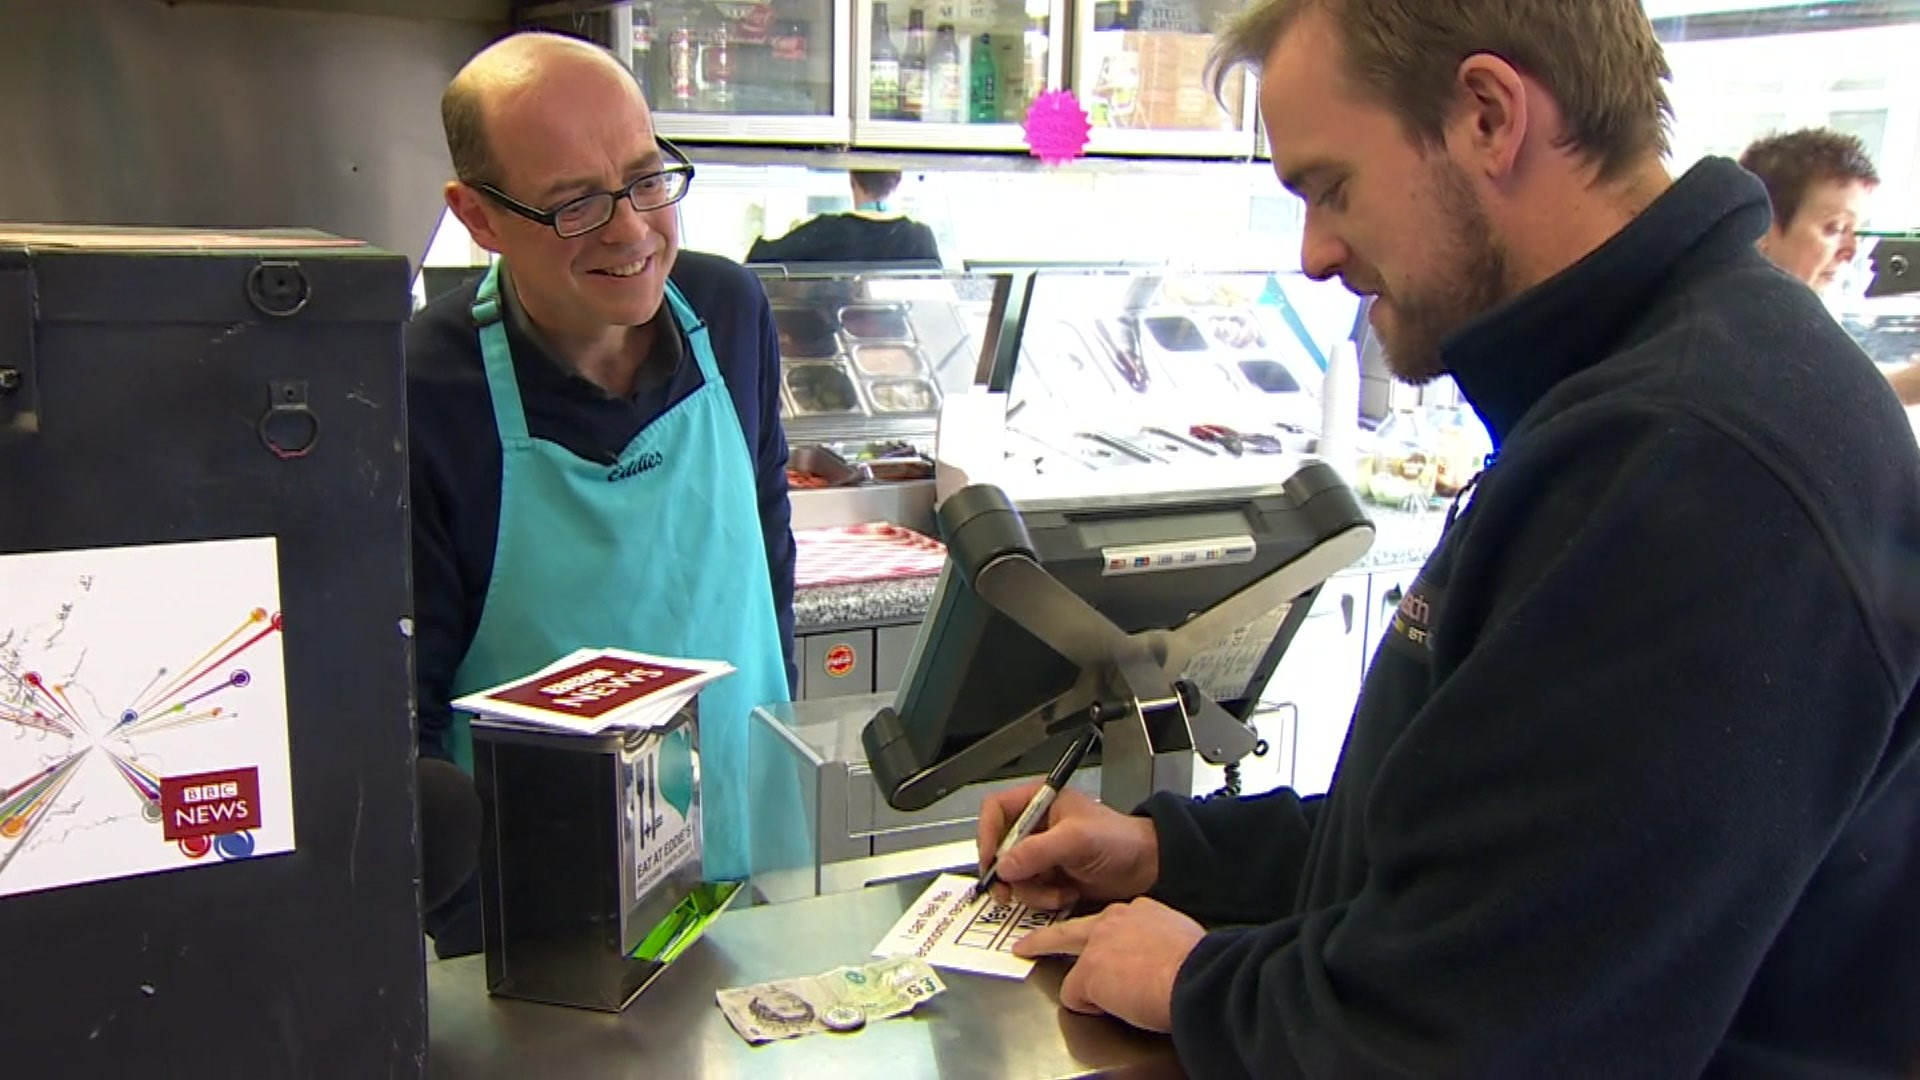 Nick Robinson serves in a fish and chip shop